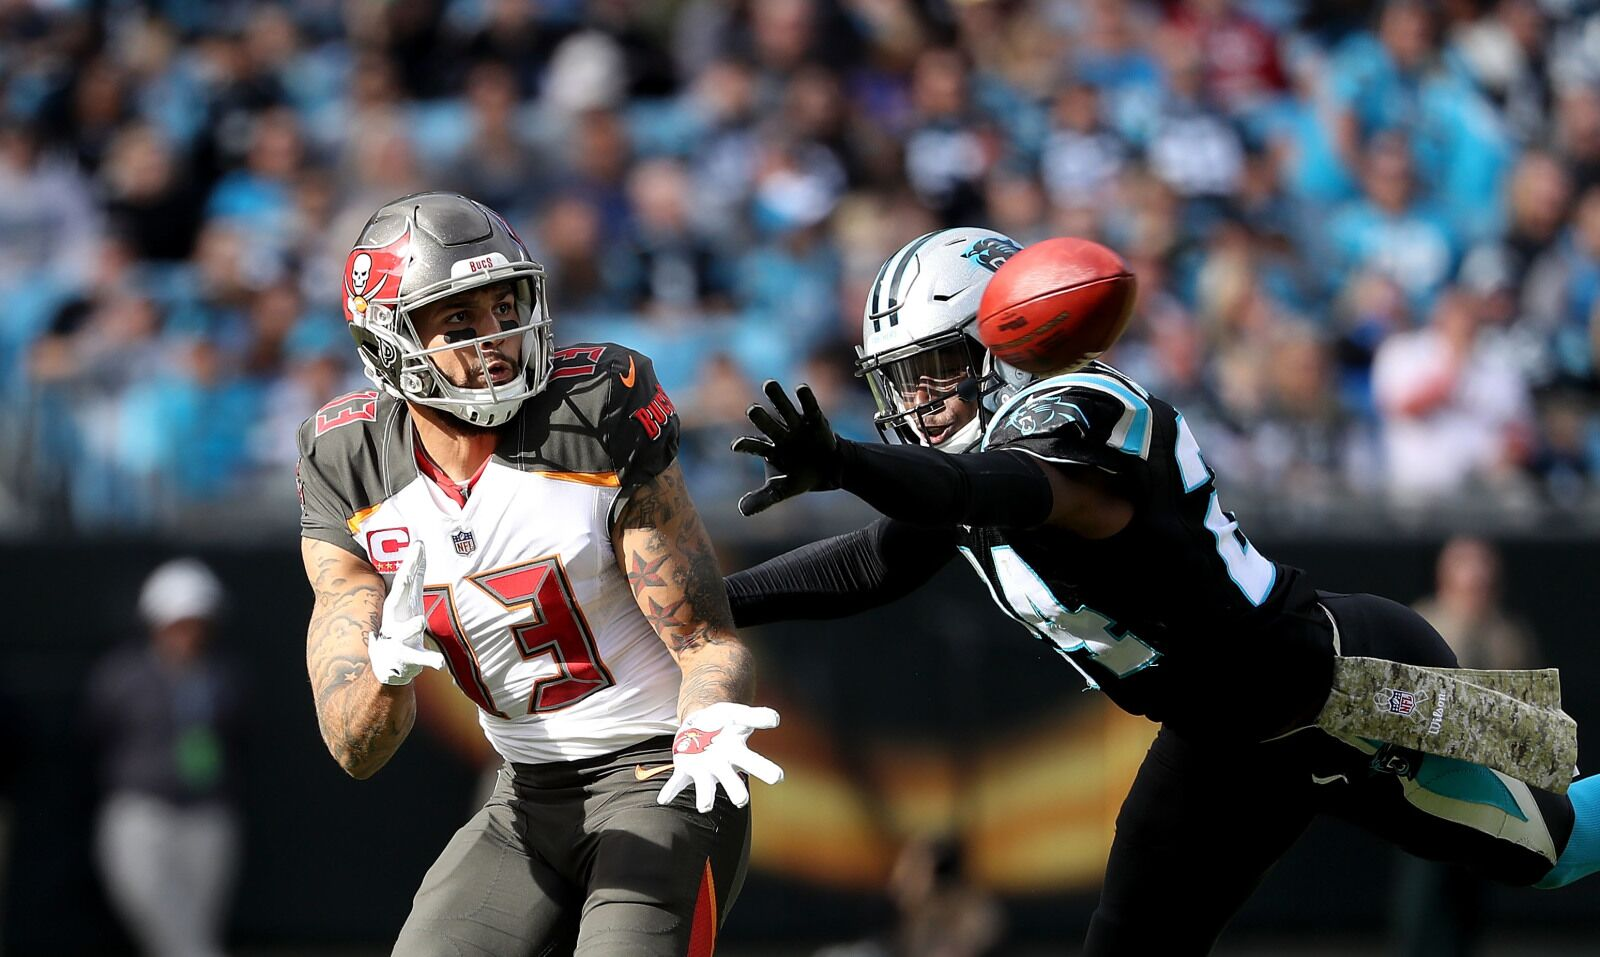 NFC South fantasy roundup: Where do Buccaneers rank?